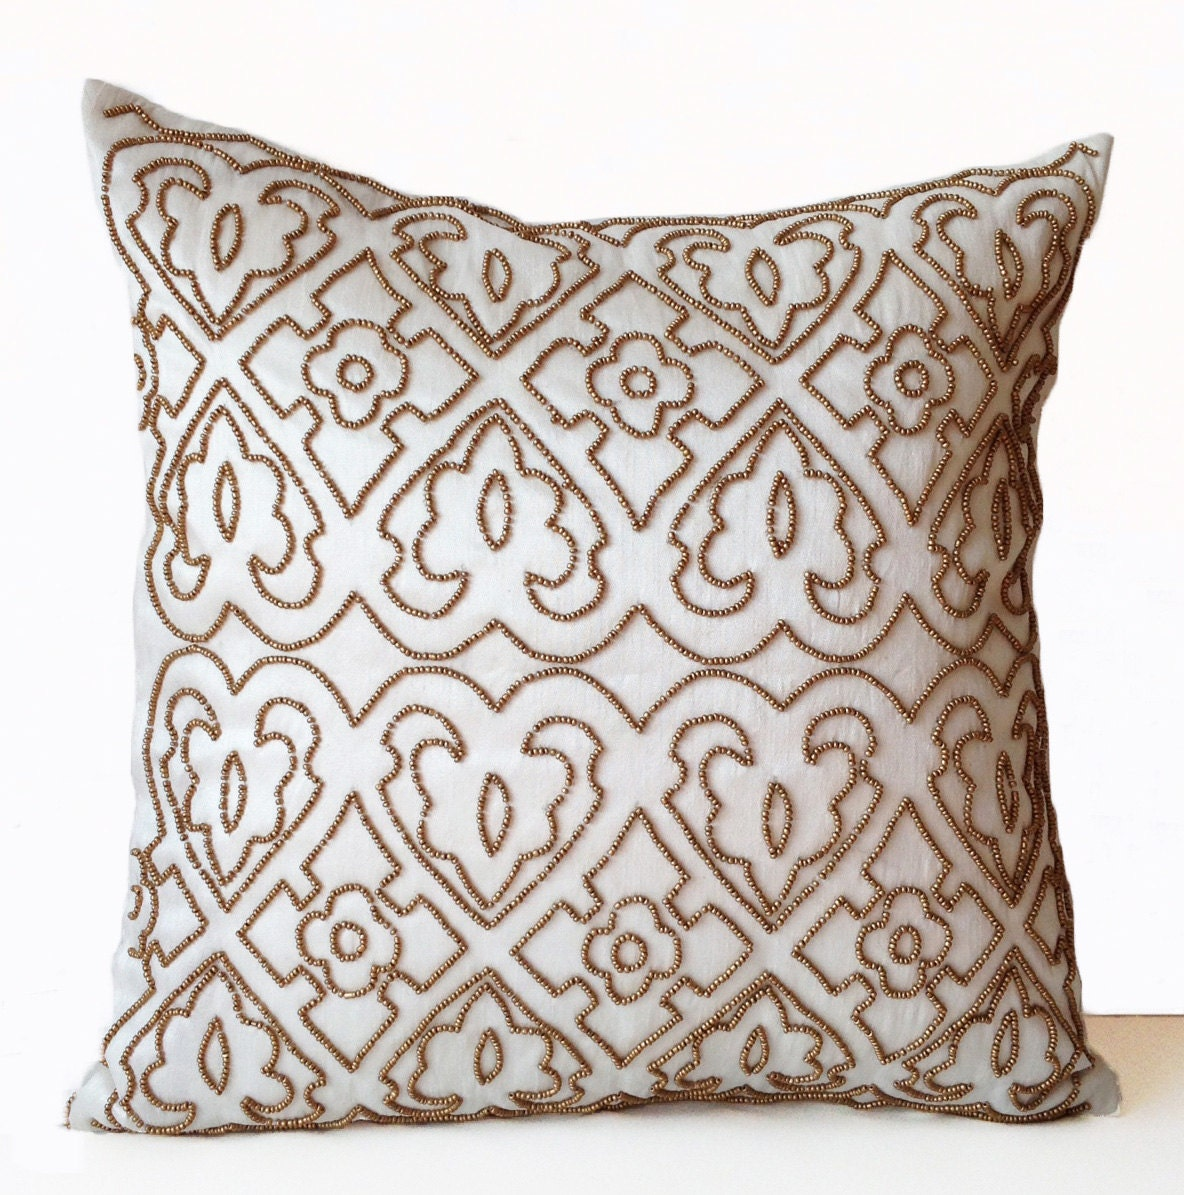 Ivory Decorative Throw Pillow Case Gold Beads Designer Pillow